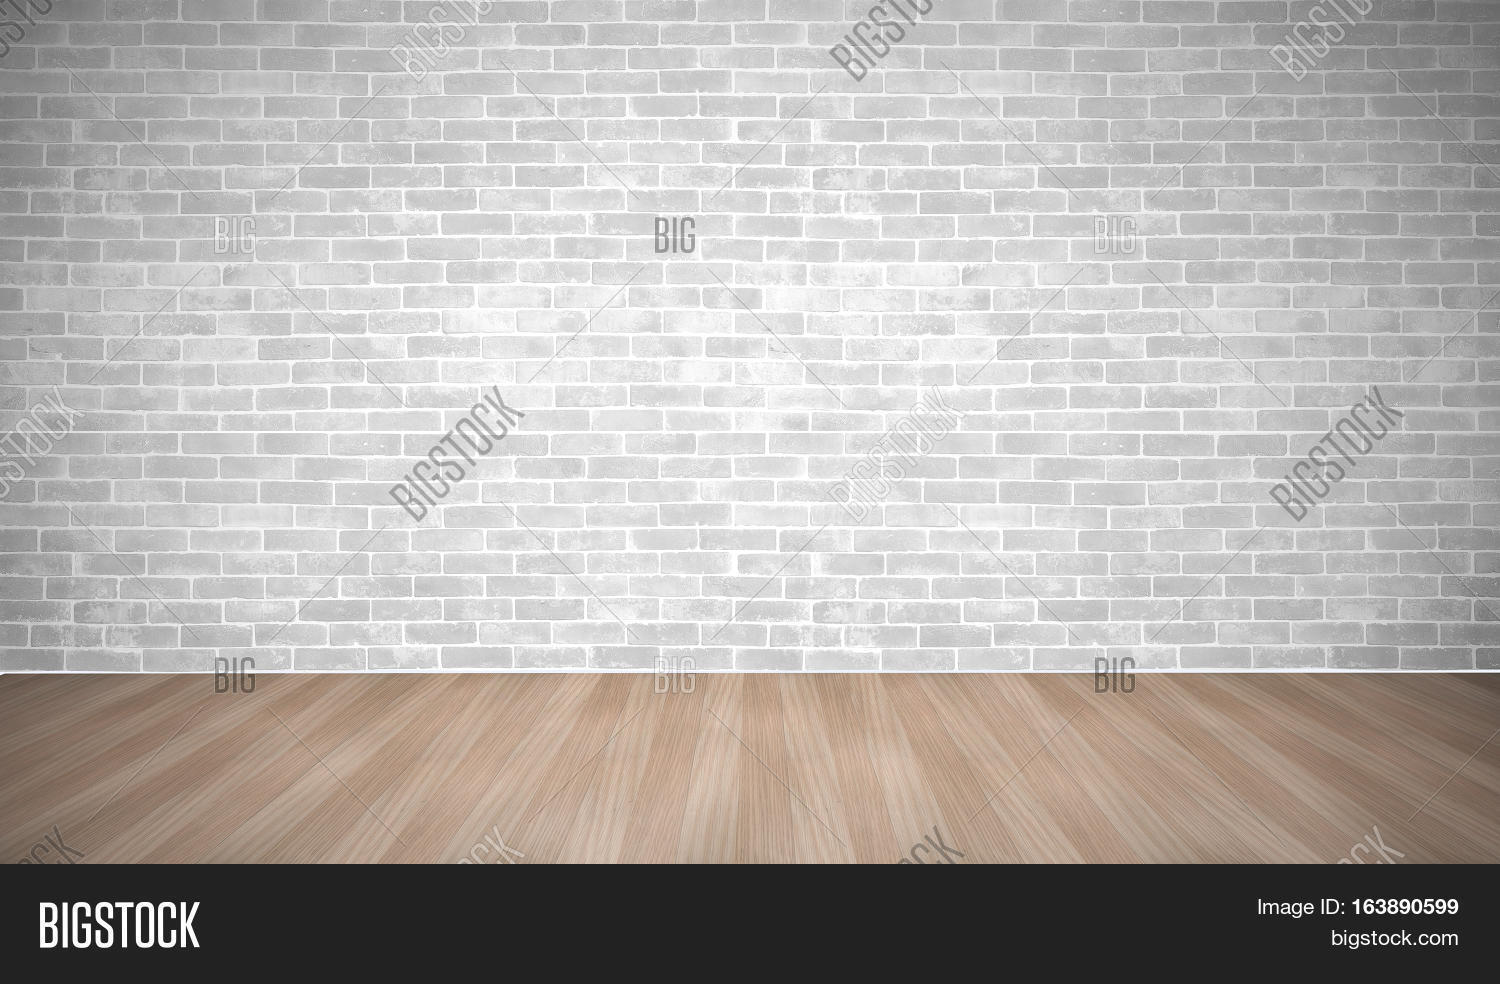 Brick wall and plank wood floor texture concept  Modern vintage